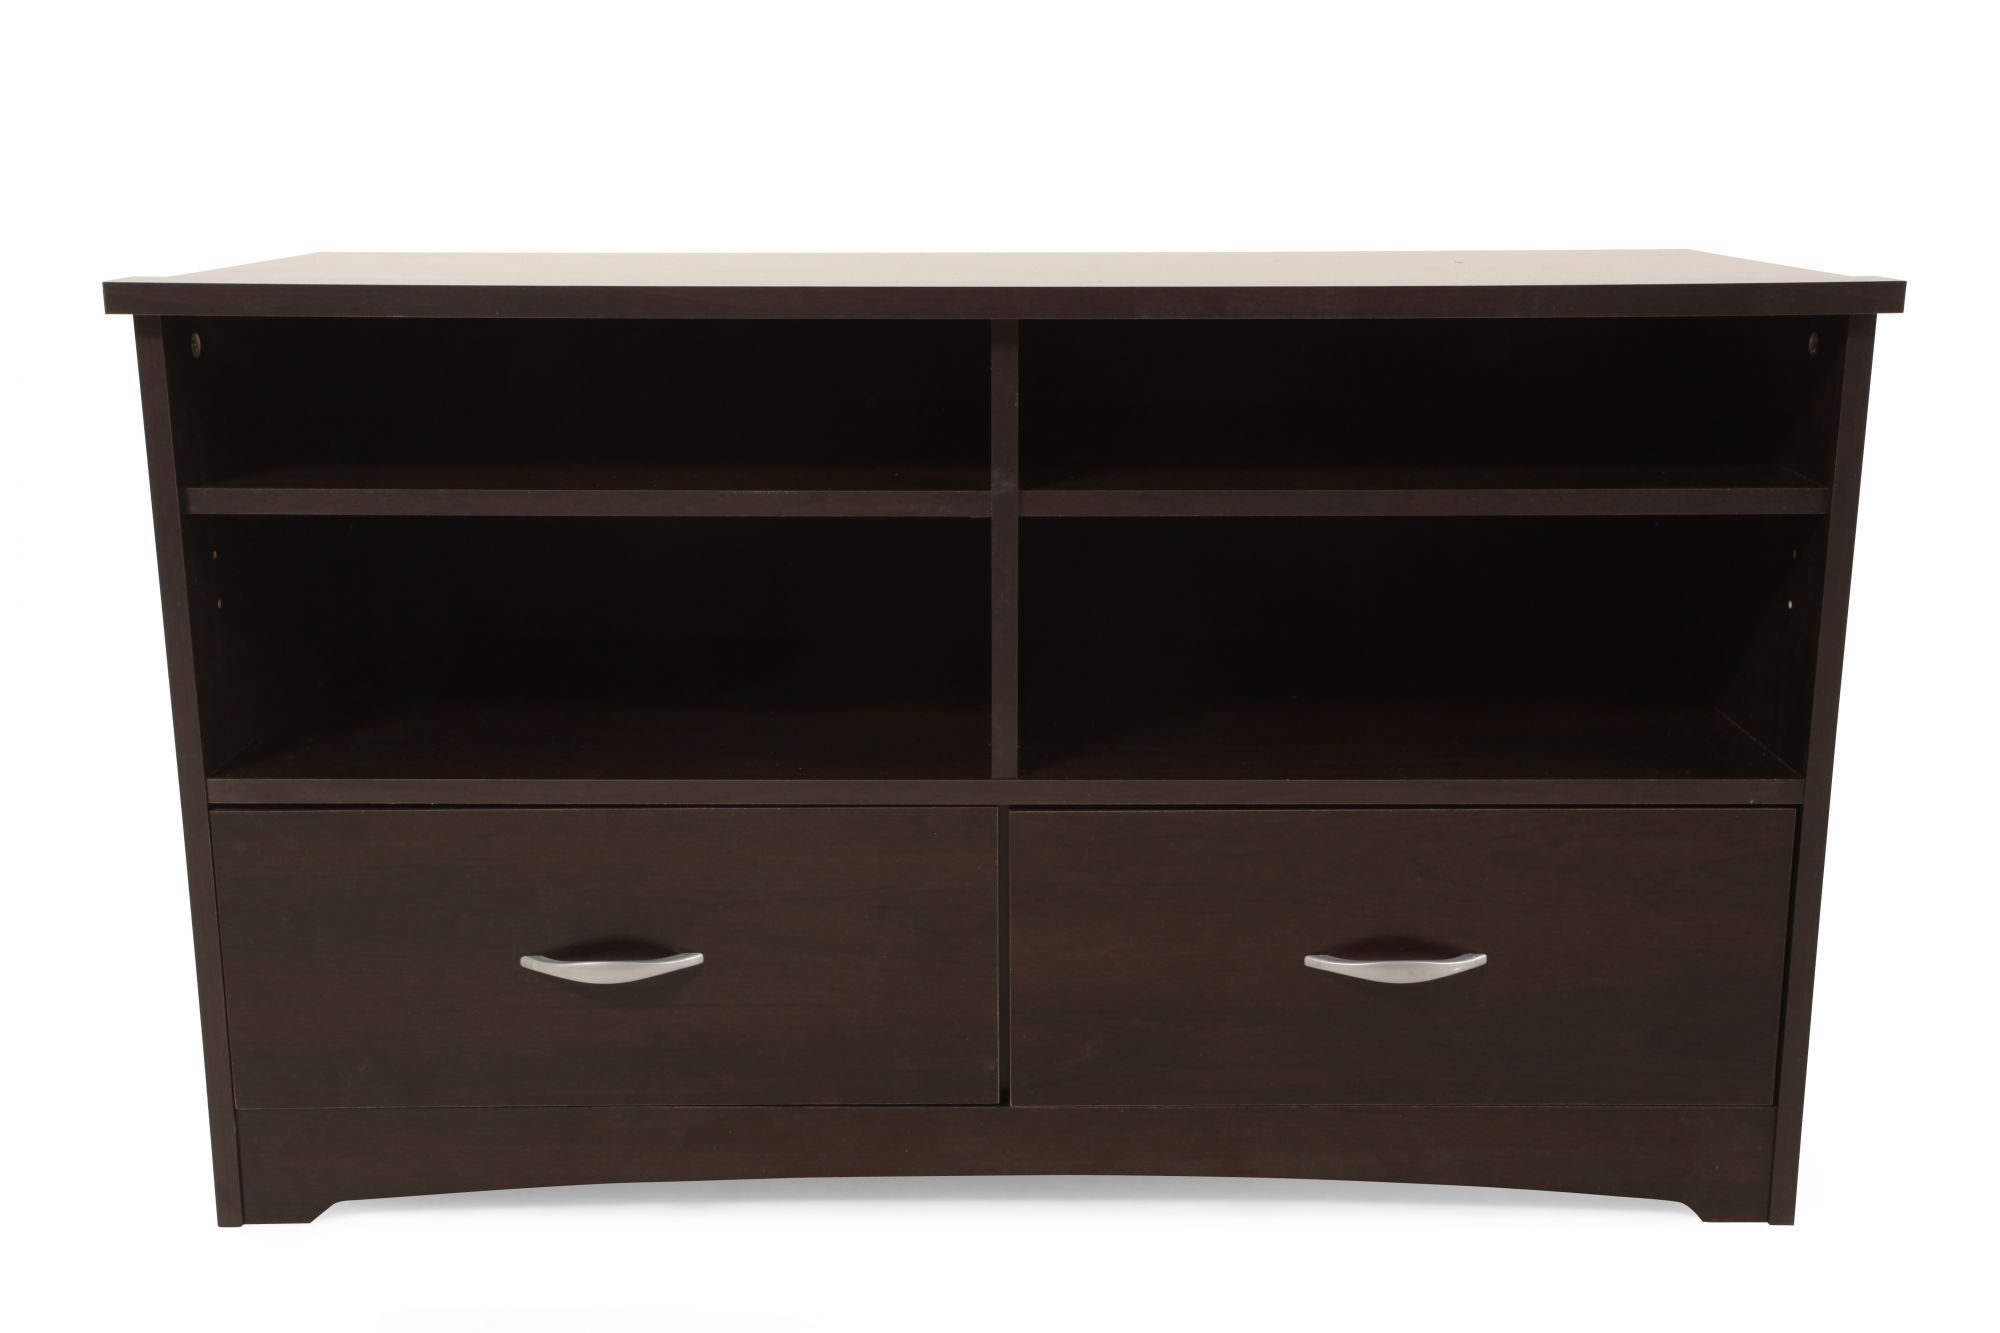 sauder beginnings cinnamon cherry tv stand - Sauder Tv Stands